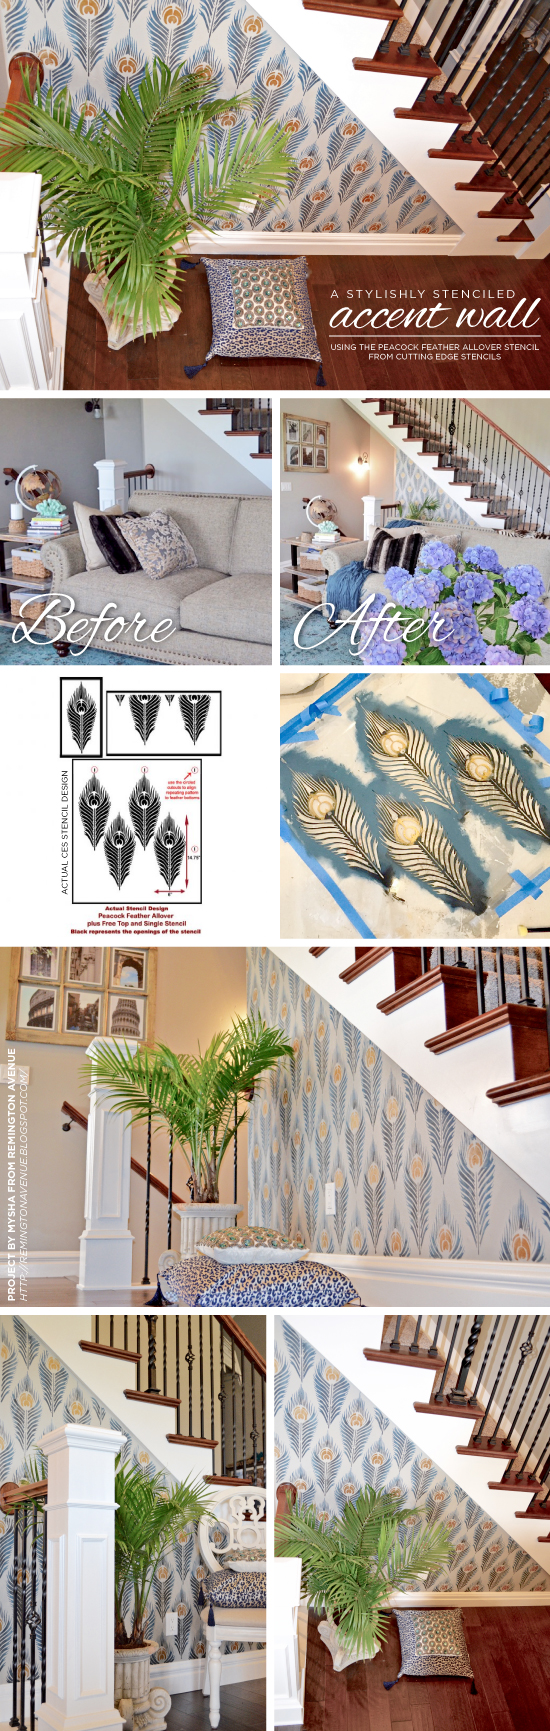 Cutting Edge Stencils shares a DIY stenciled accent wall using the Peacock Feather Allover Stencil. Stenciling the Peacock Feather allover stencil pattern on an accent wall. http://www.cuttingedgestencils.com/peacock-feather-wall-stencil-pattern.html